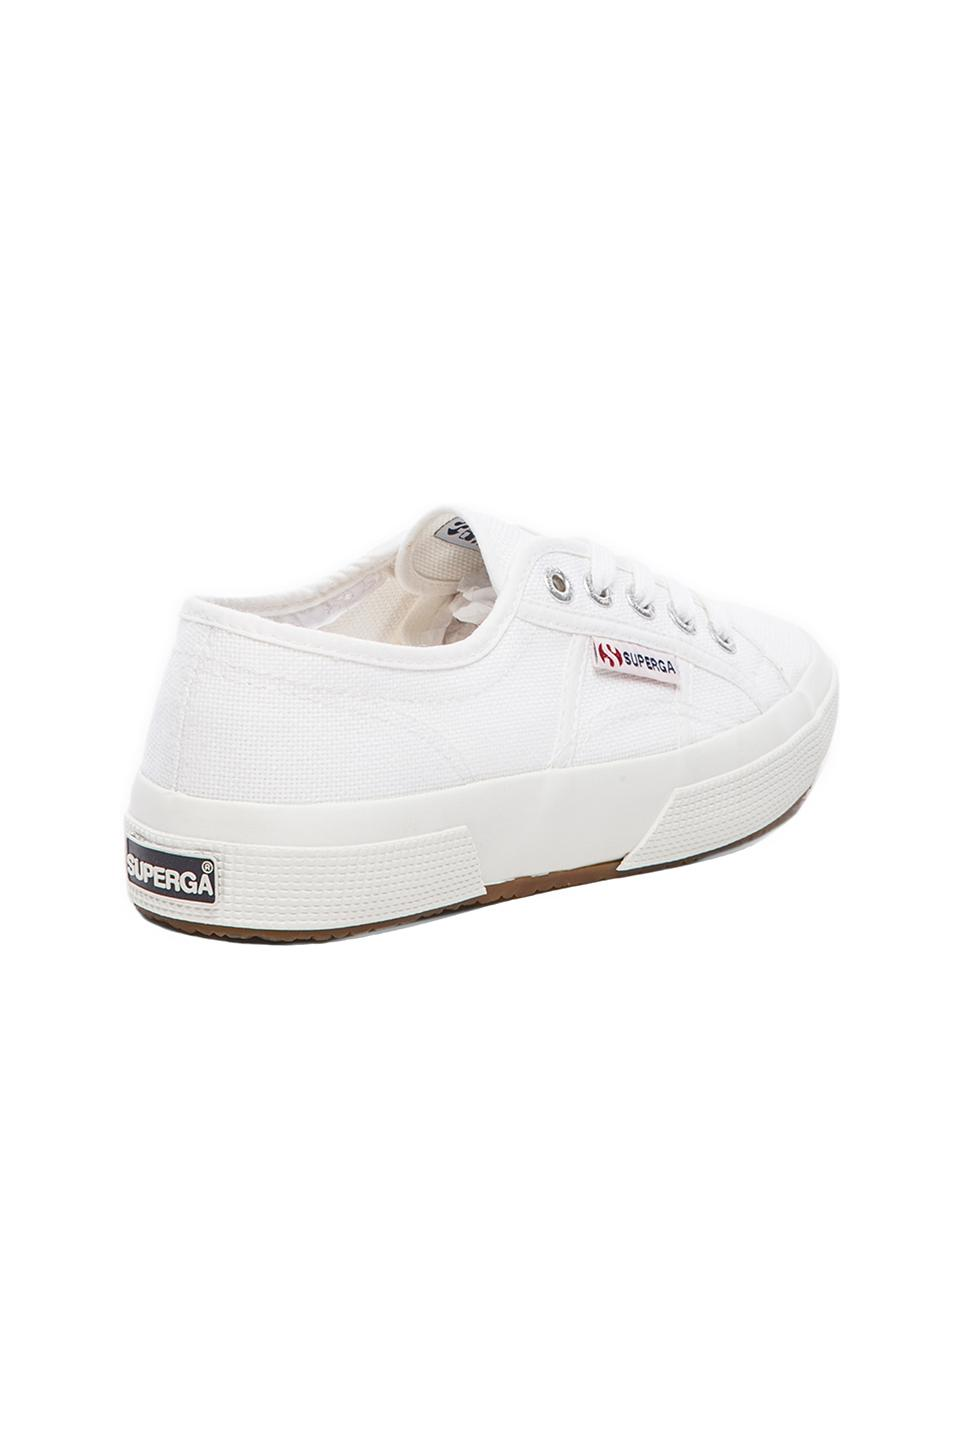 Superga 2750 Cotu Classic Sneaker in White from REVOLVEclothing.com